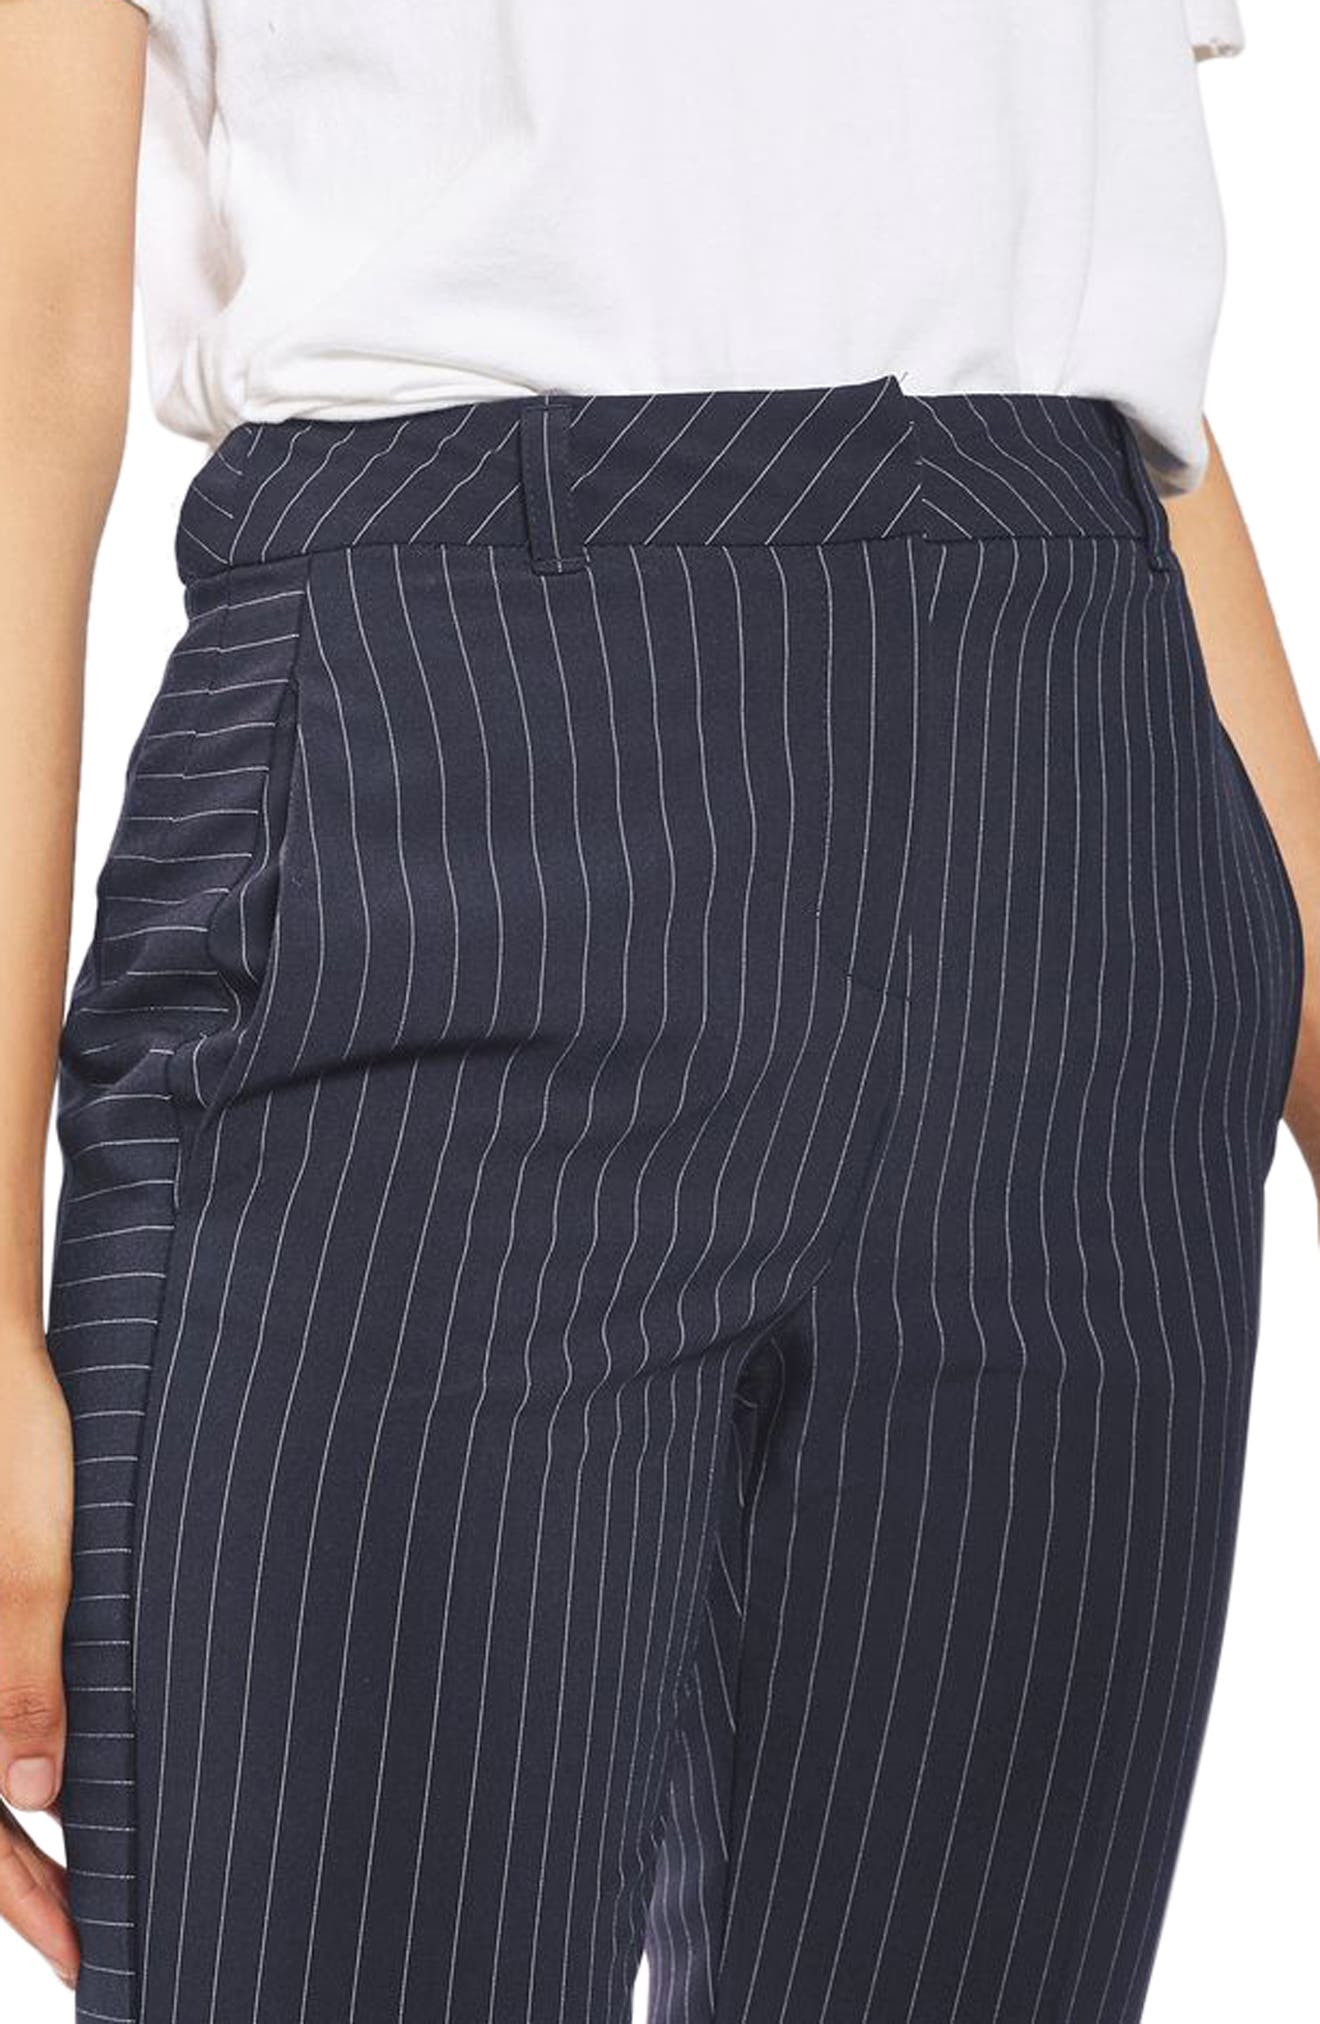 Cut About Pinstripe Cigarette Trousers,                             Alternate thumbnail 5, color,                             Navy Blue